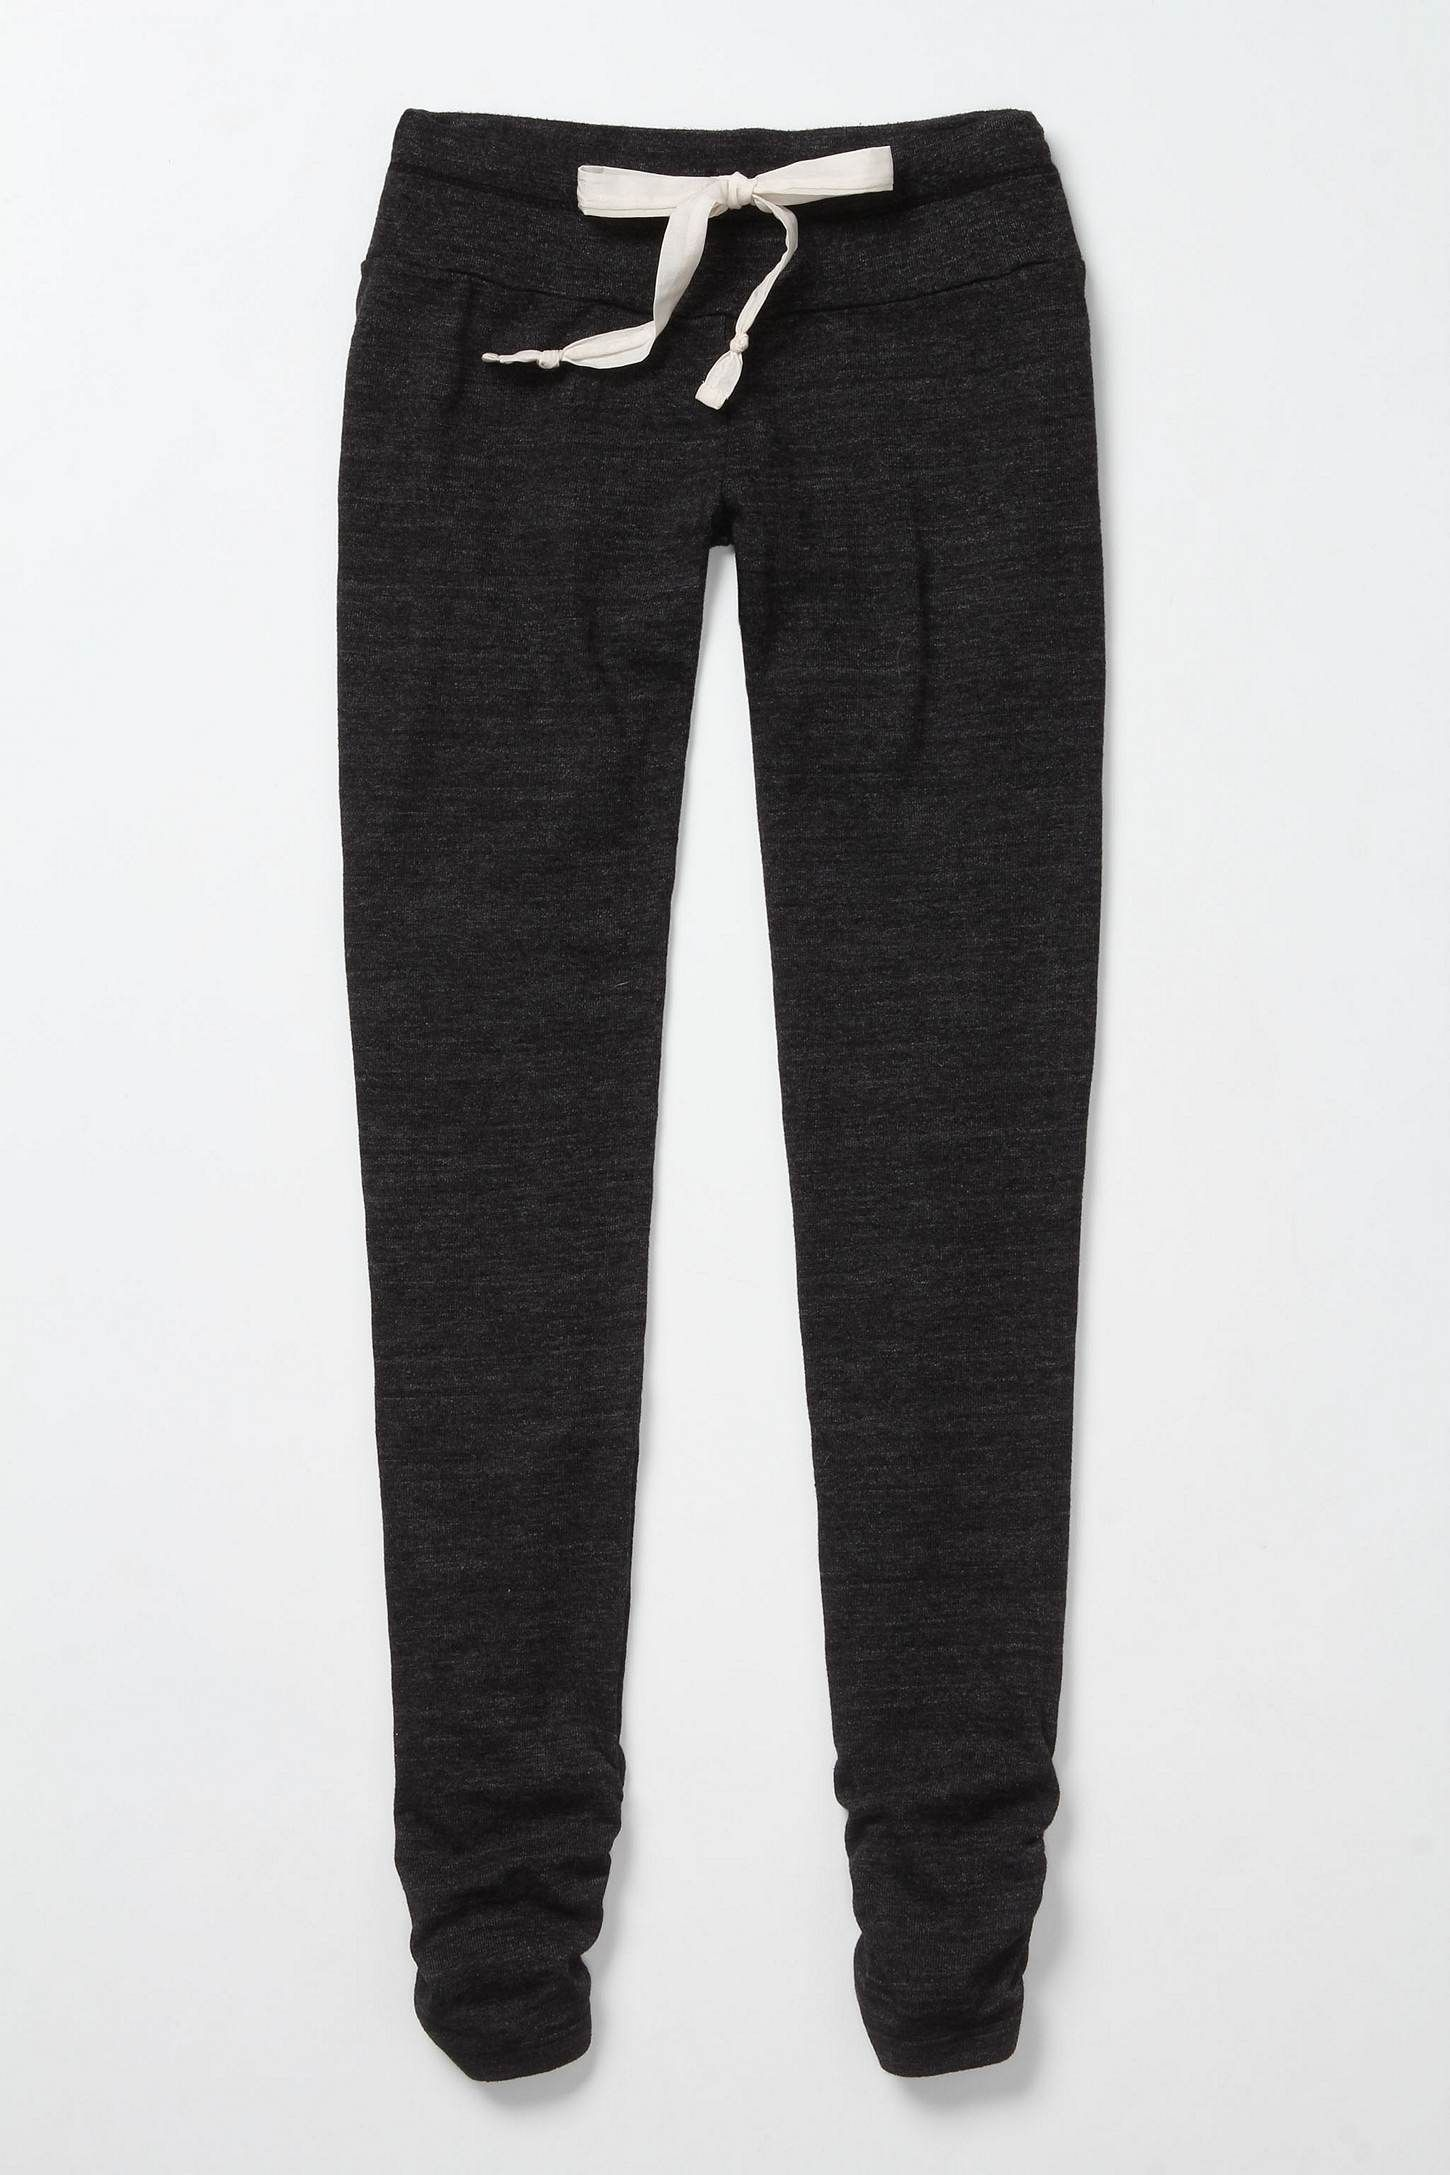 2312709bc3b0c I would love to snuggle up in these Anthropologie pants.